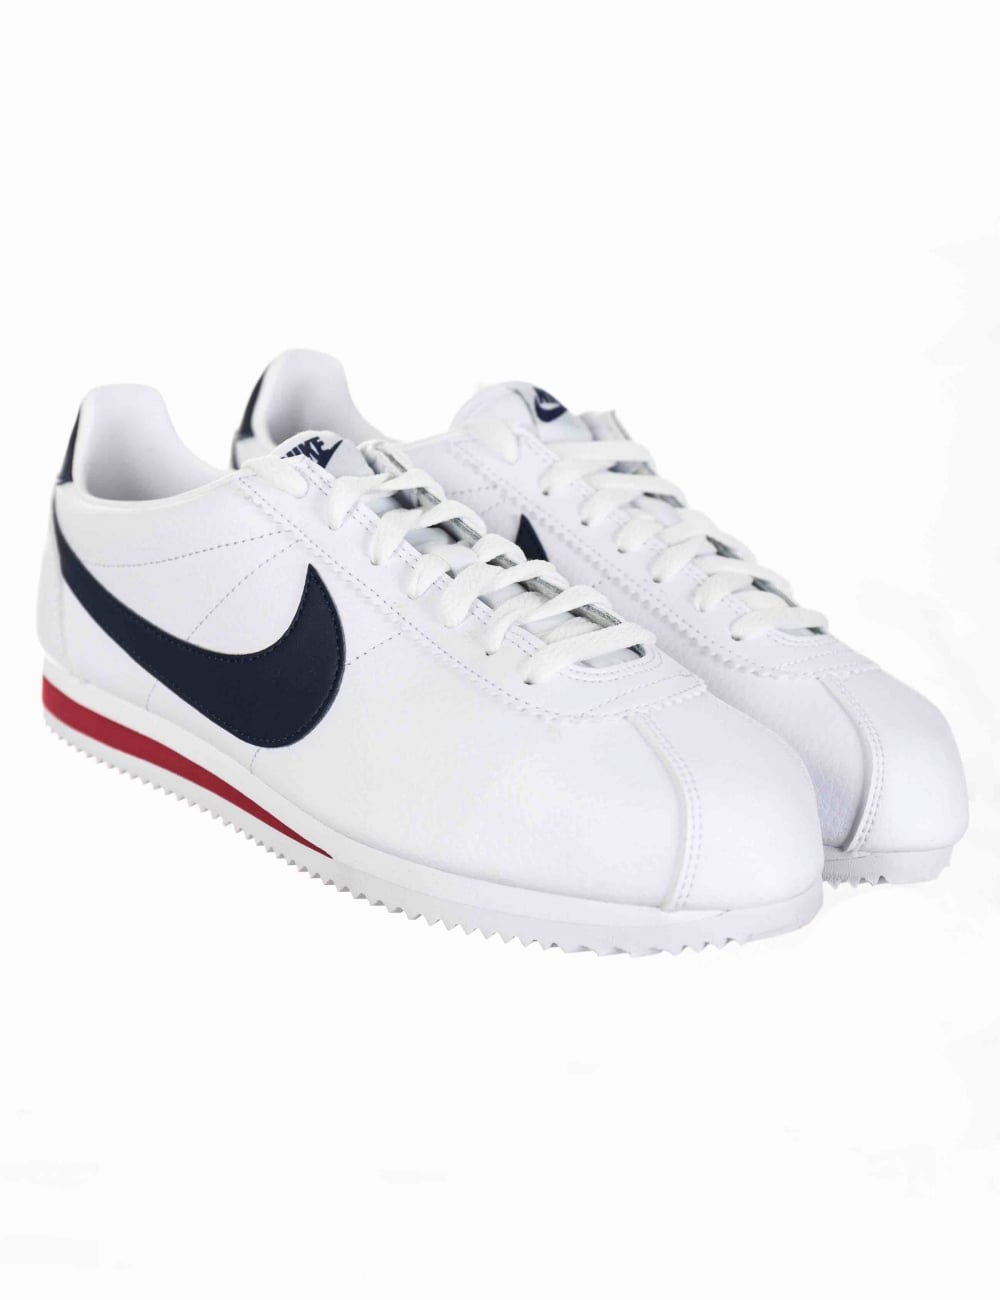 178af08c4be2 good nike cortez leather white mens 13a90 a8fcf  france cortez leather  shoes white midnight navy 9d2c5 46022